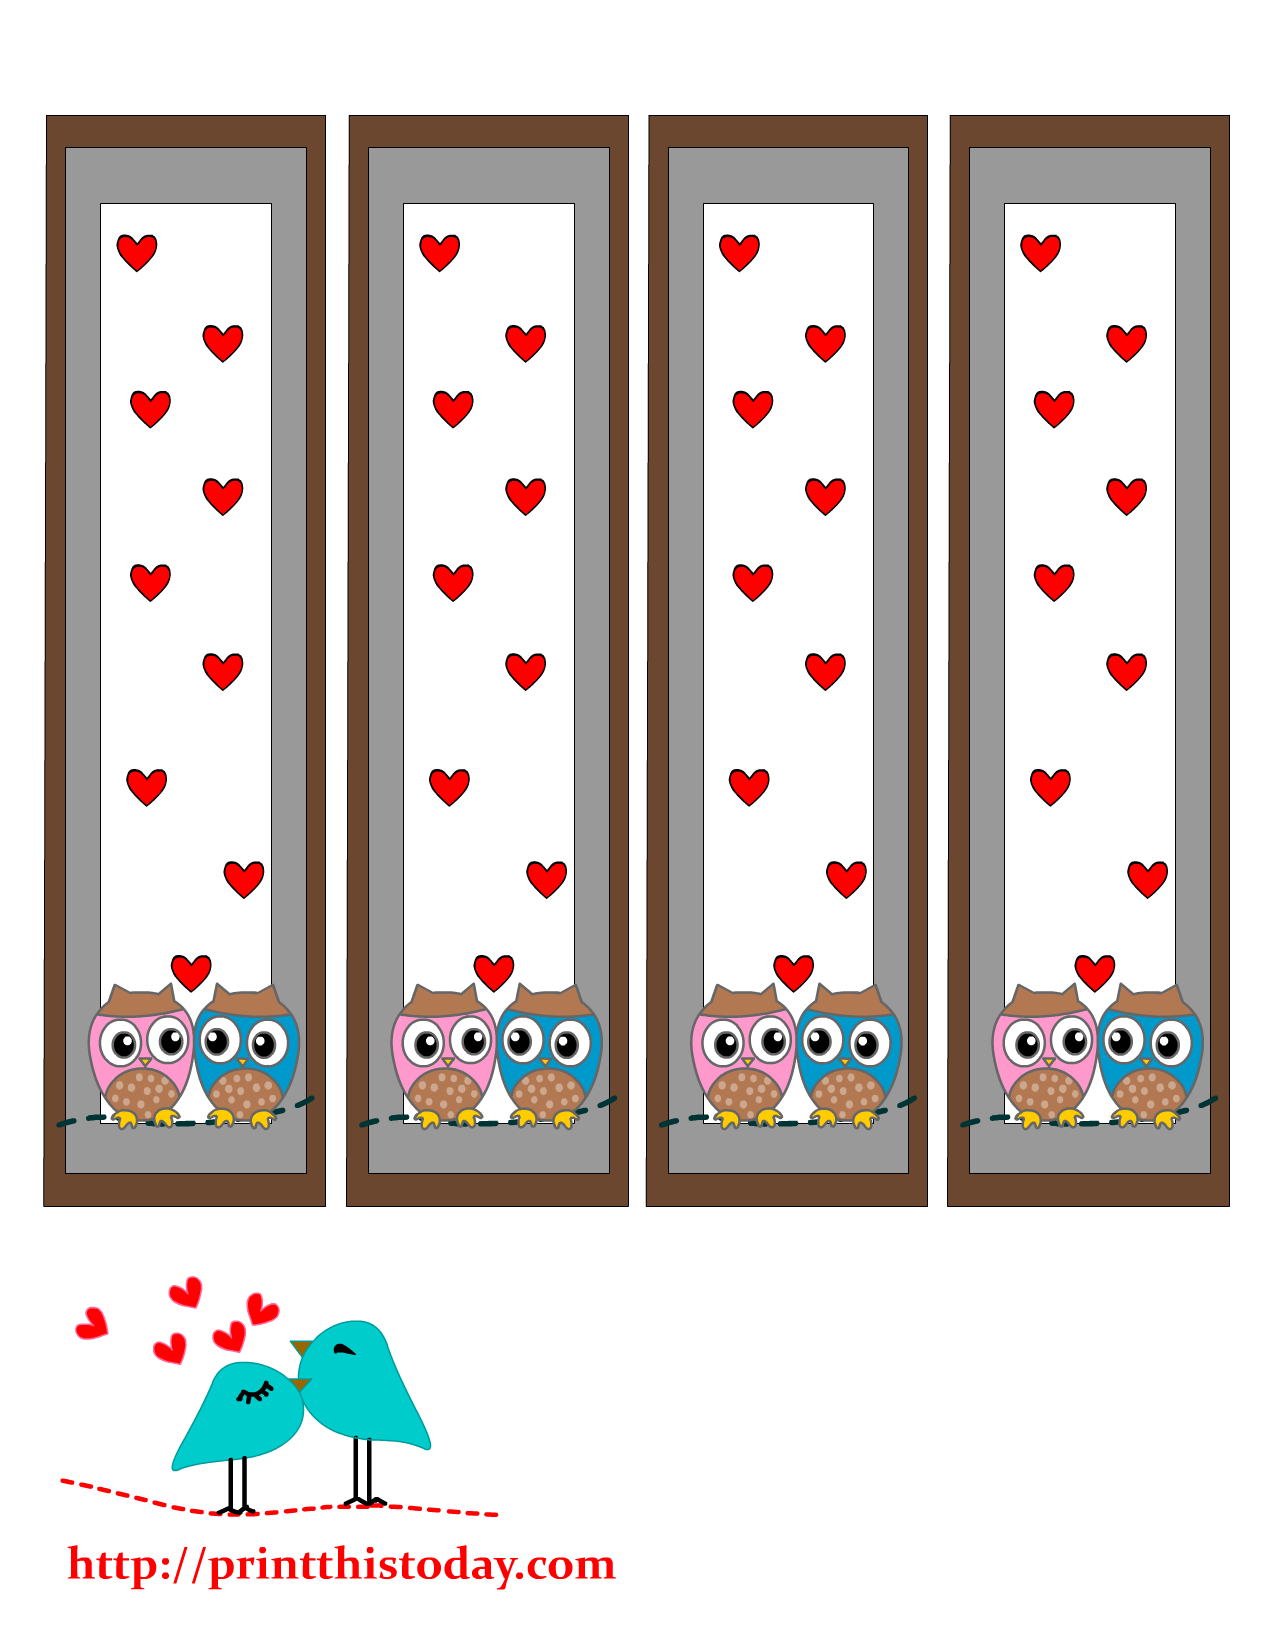 valentine bookmarks to color : Free Printable Bookmarks Featuring Cute Owls